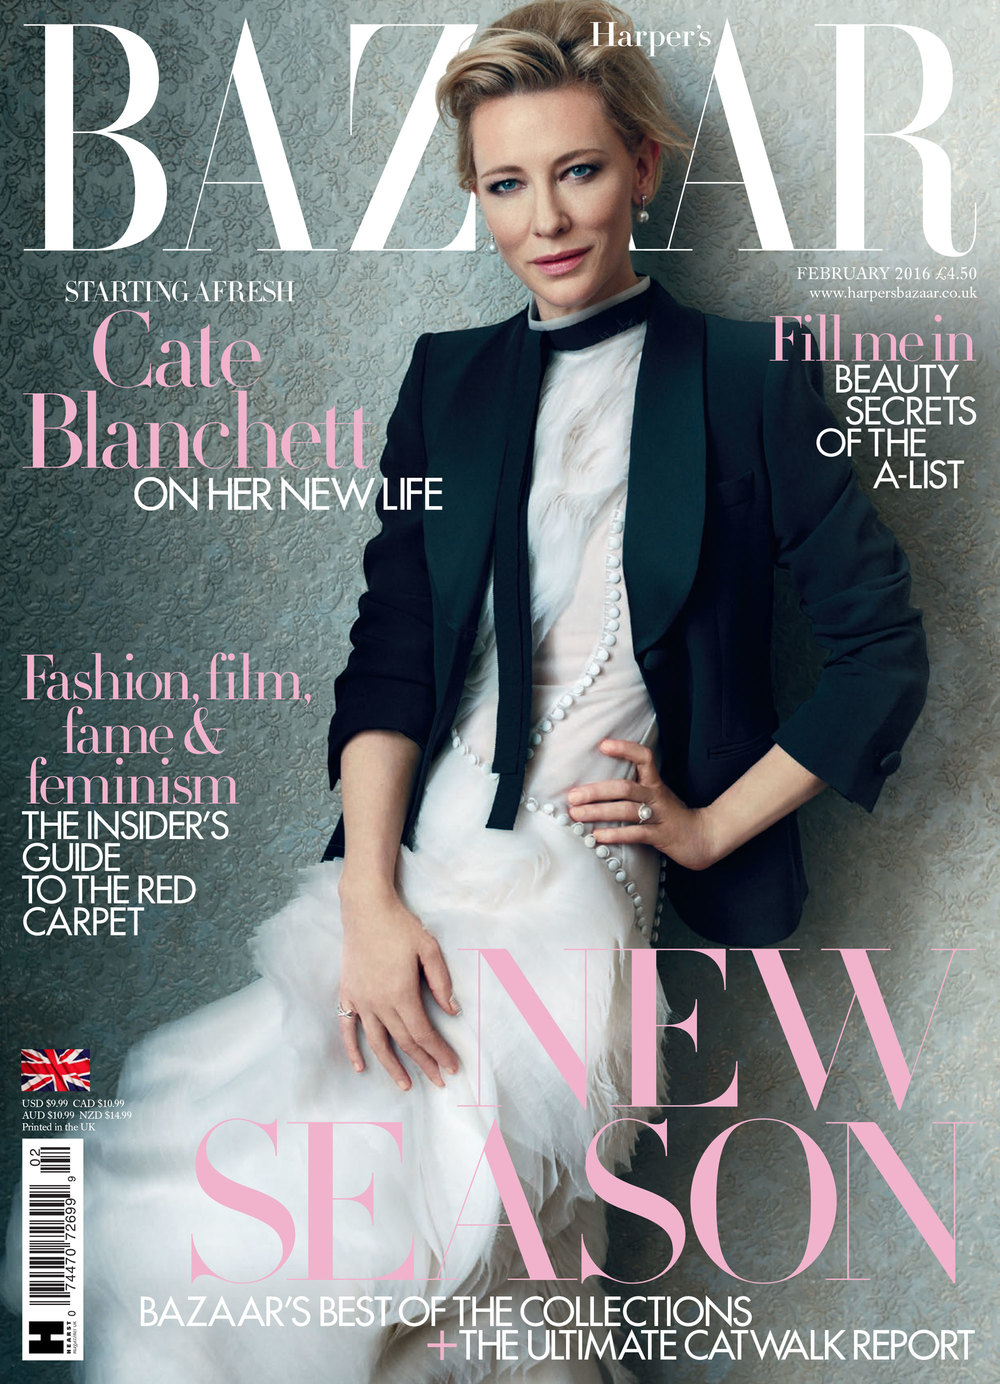 Cate Blanchett Cover Story for Harper's Bazaar, styled by Charlie Harrington